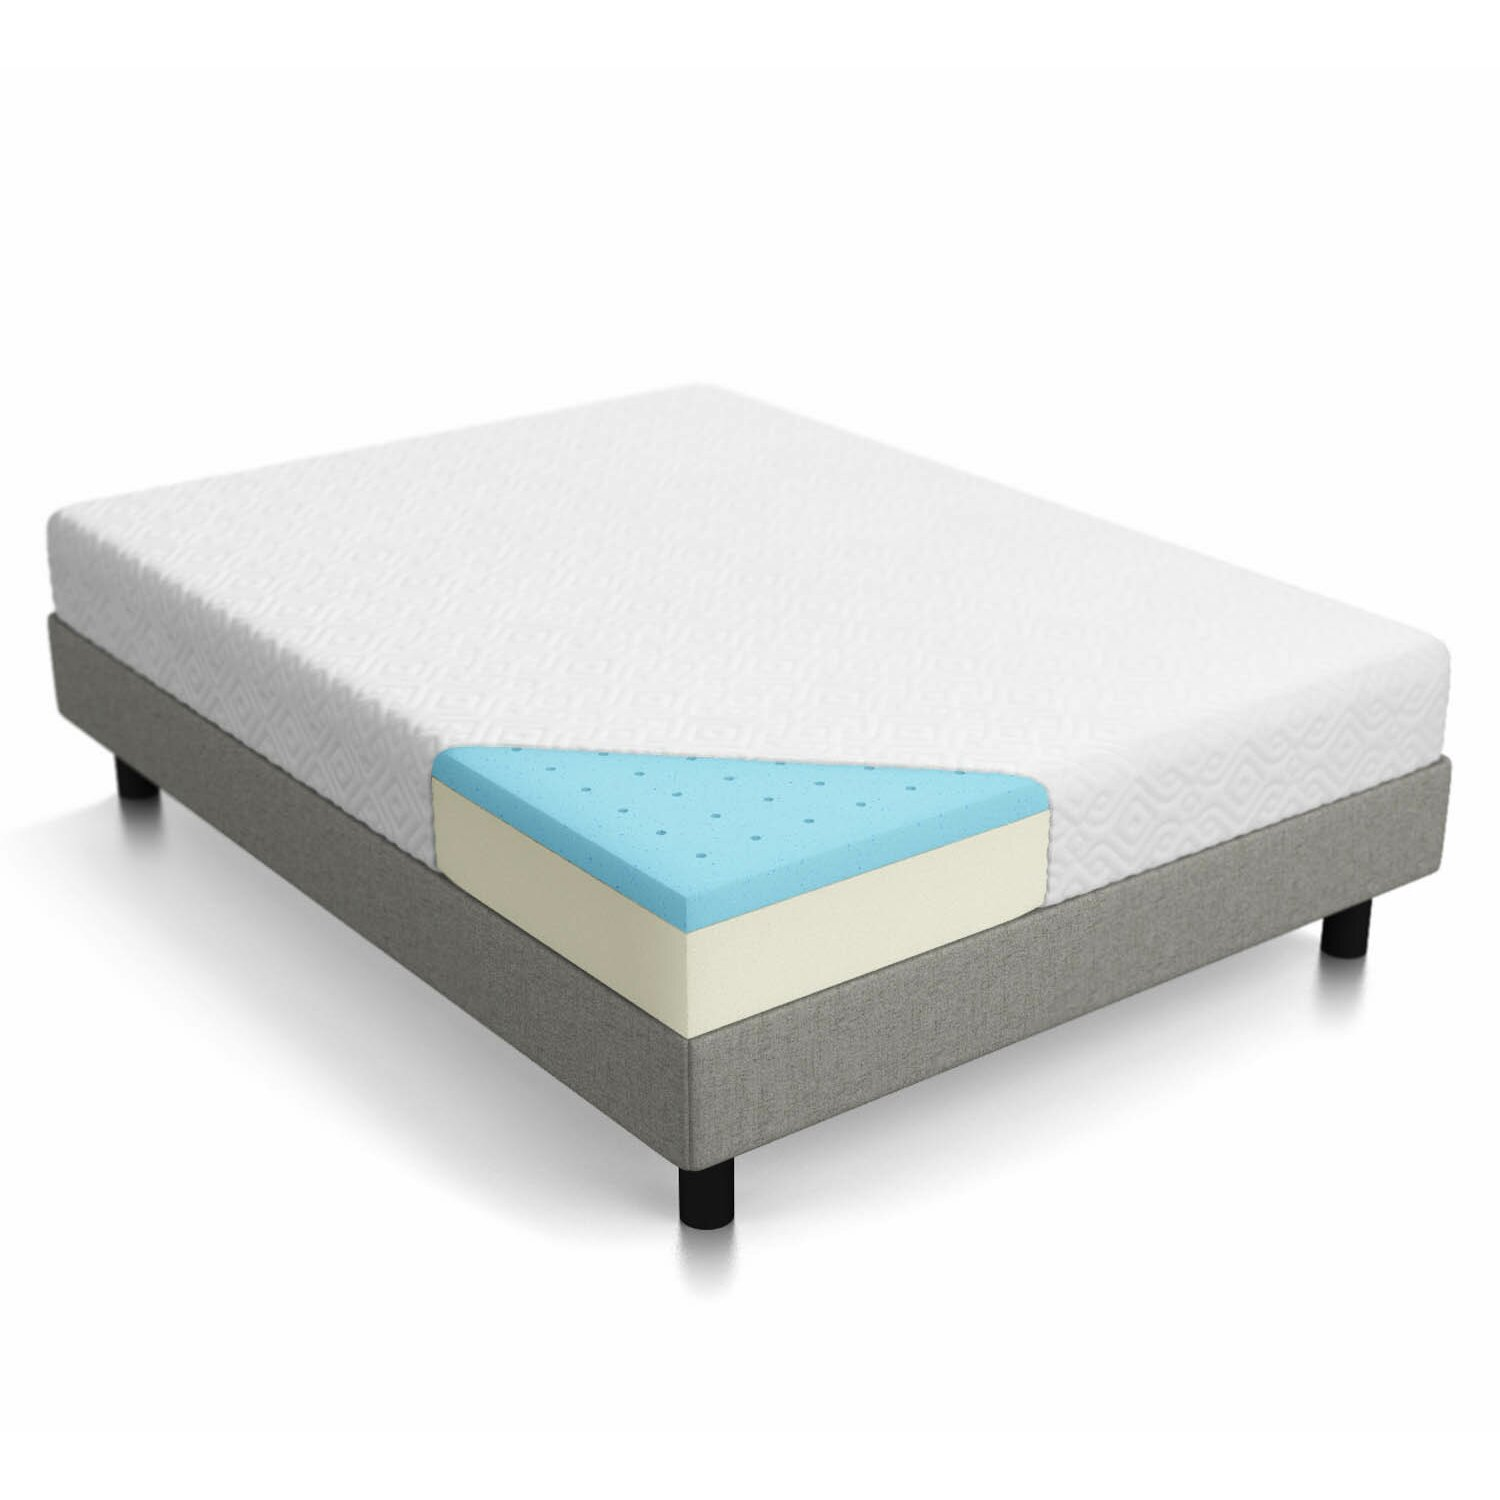 "Lucid 10"" Memory Foam Mattress & Reviews"